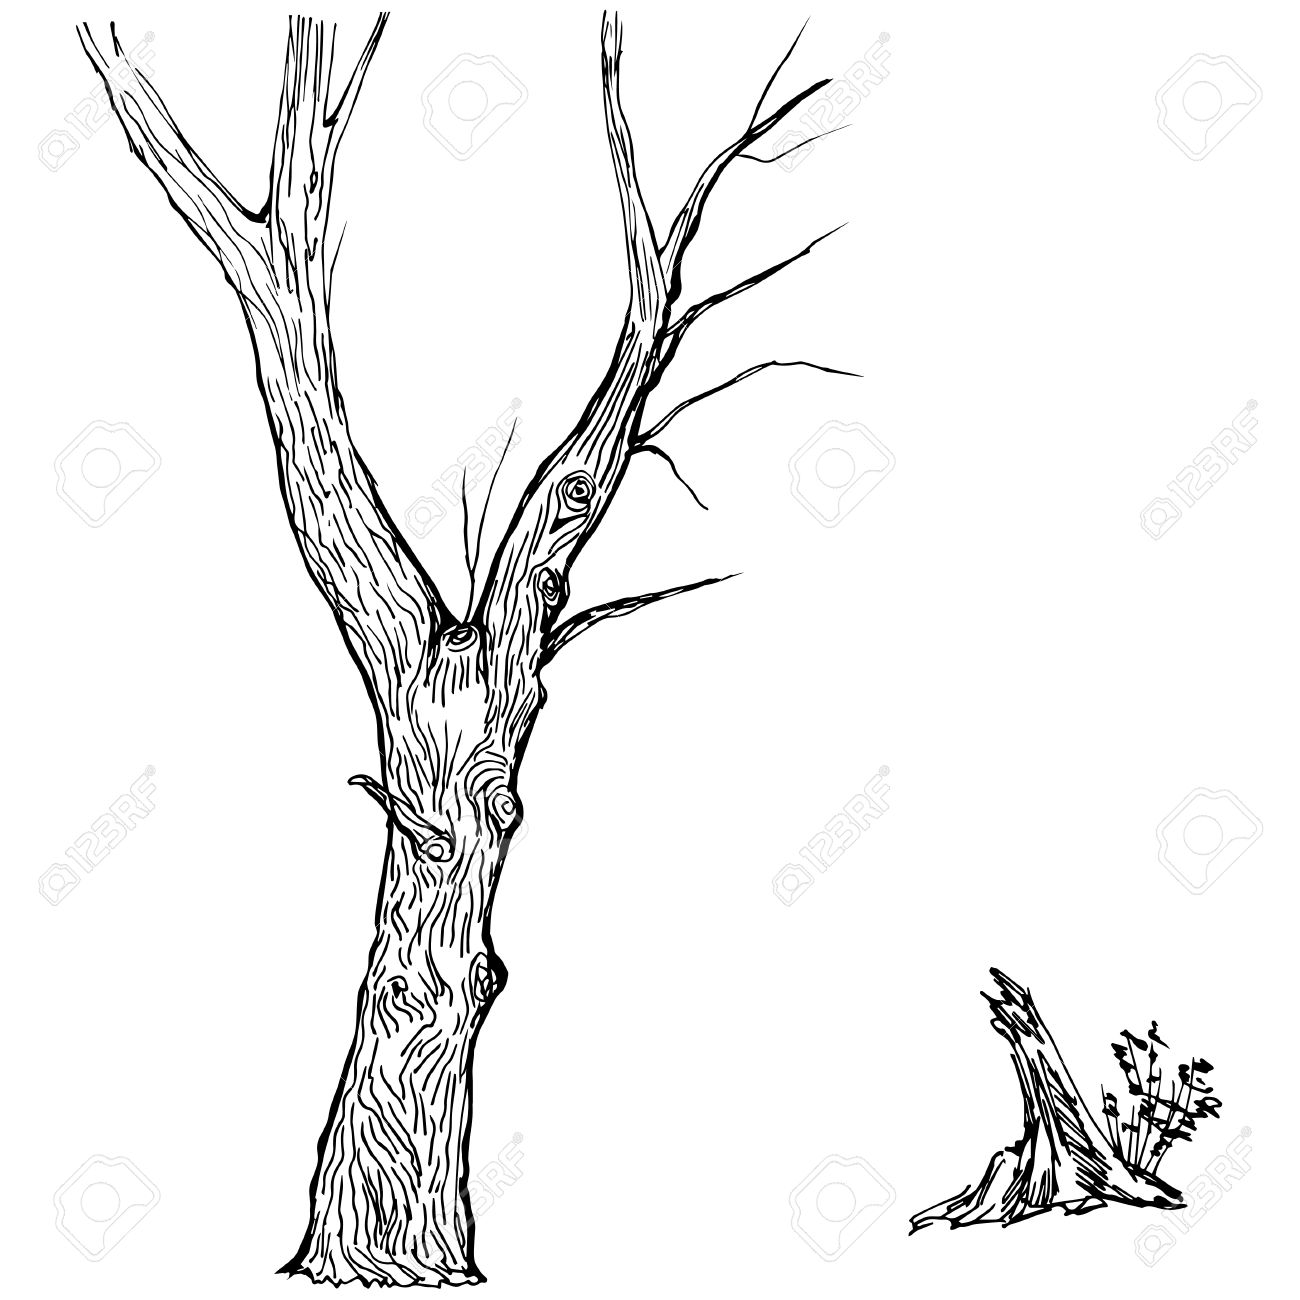 Hand Drawn Tree Silhouette And Stump On White Background Royalty.